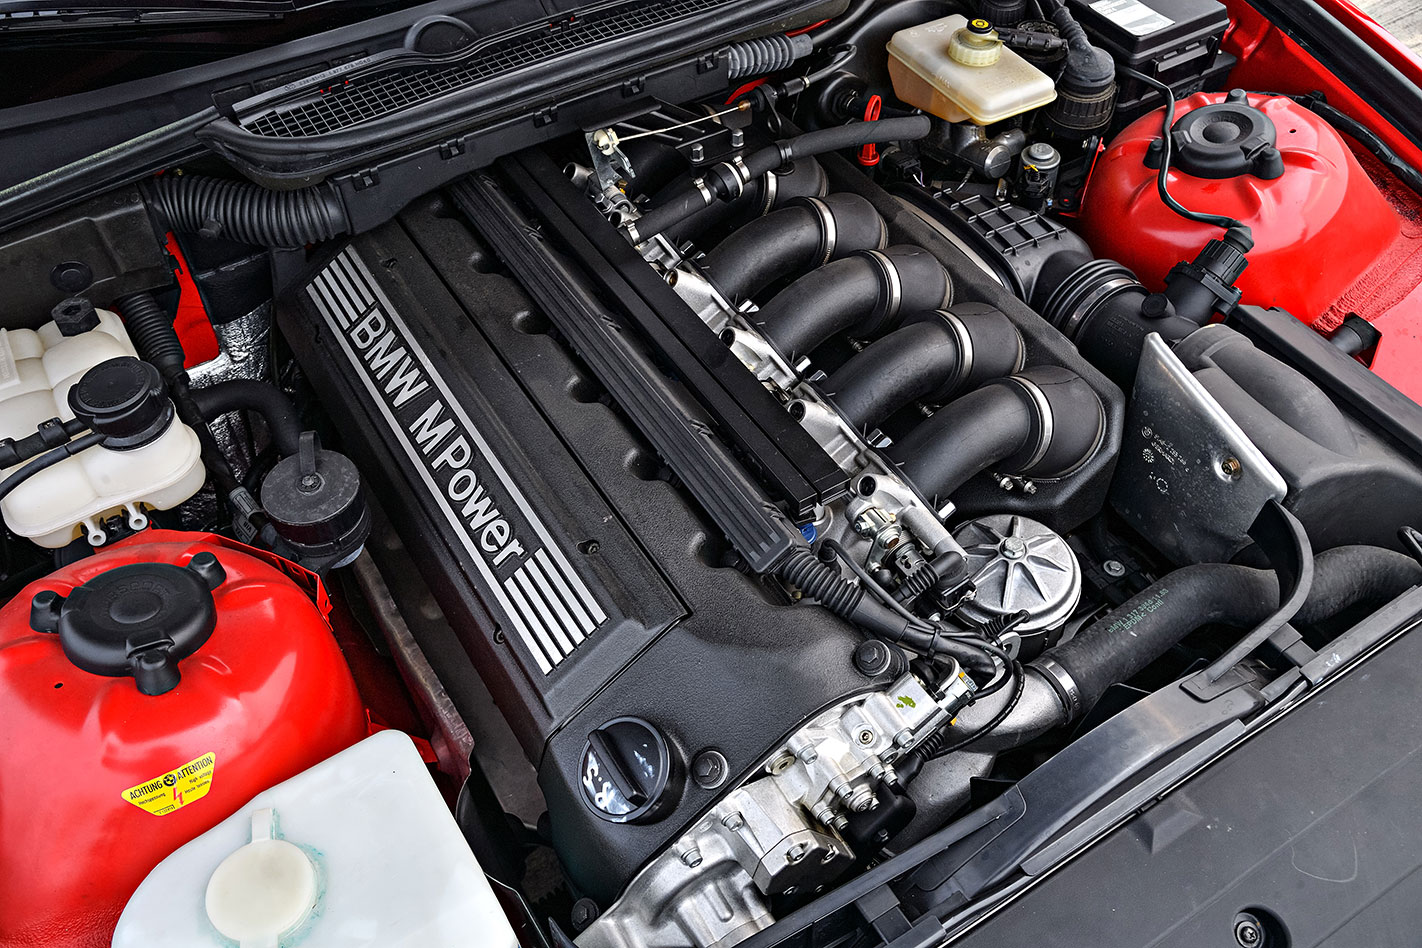 BMW E36 M3 Compact engine